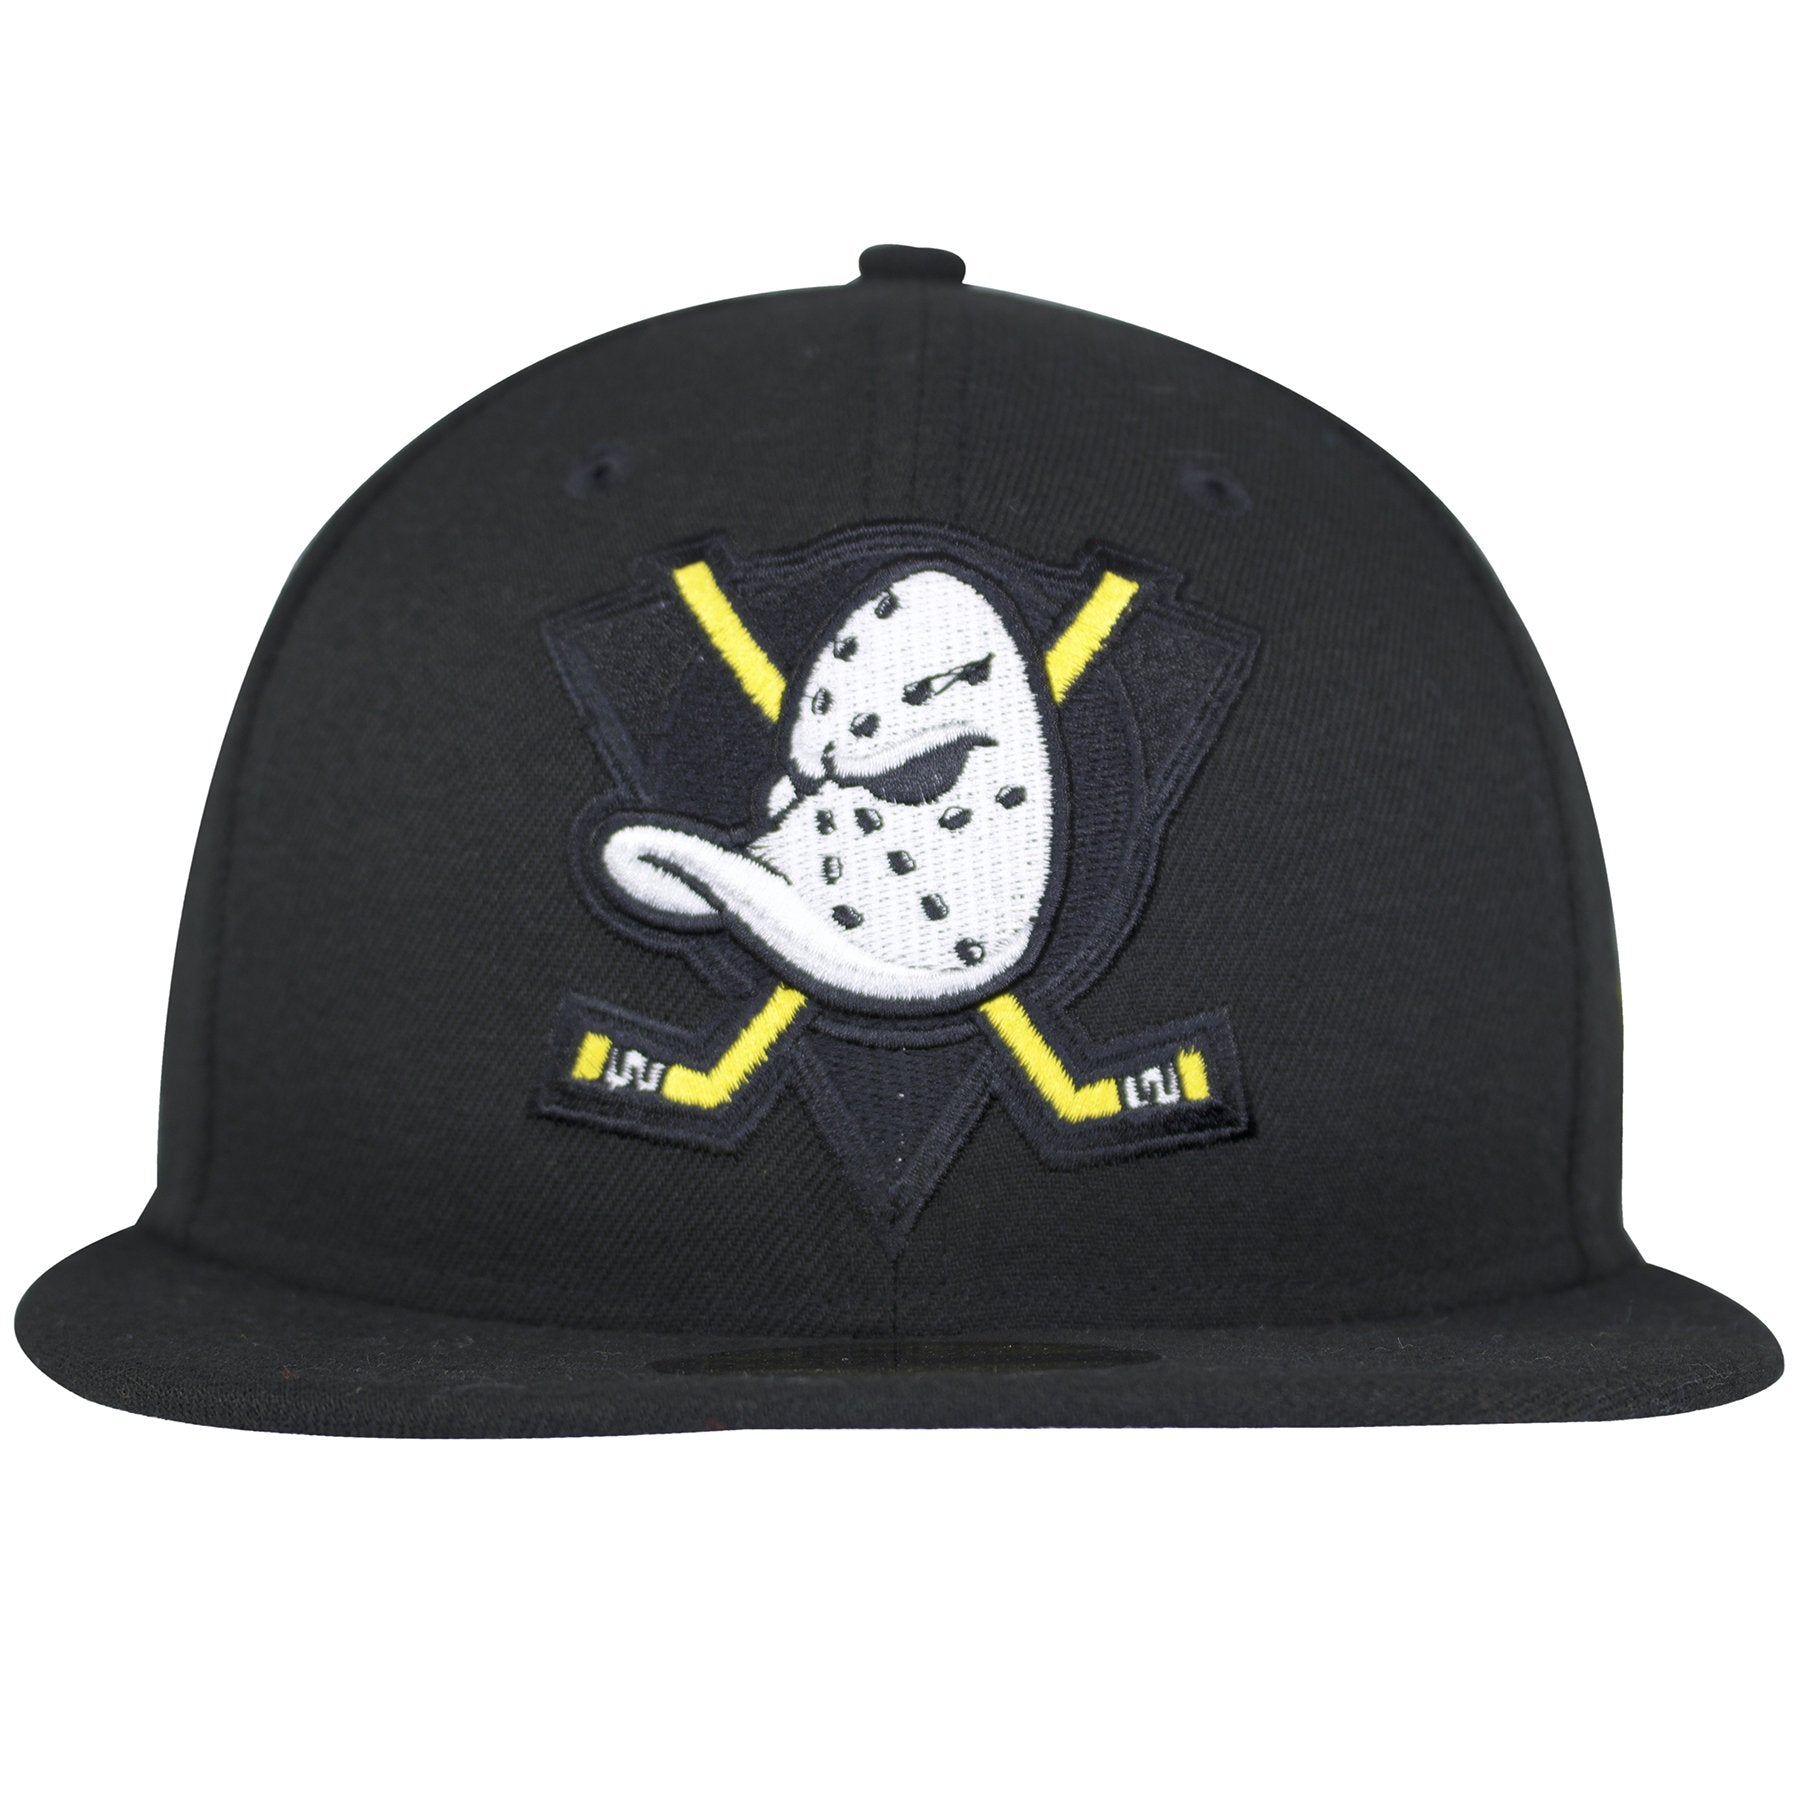 This New Era Anaheim Ducks Fitted Hat has the Mighty Ducks logo on the  front with 4227d30684a